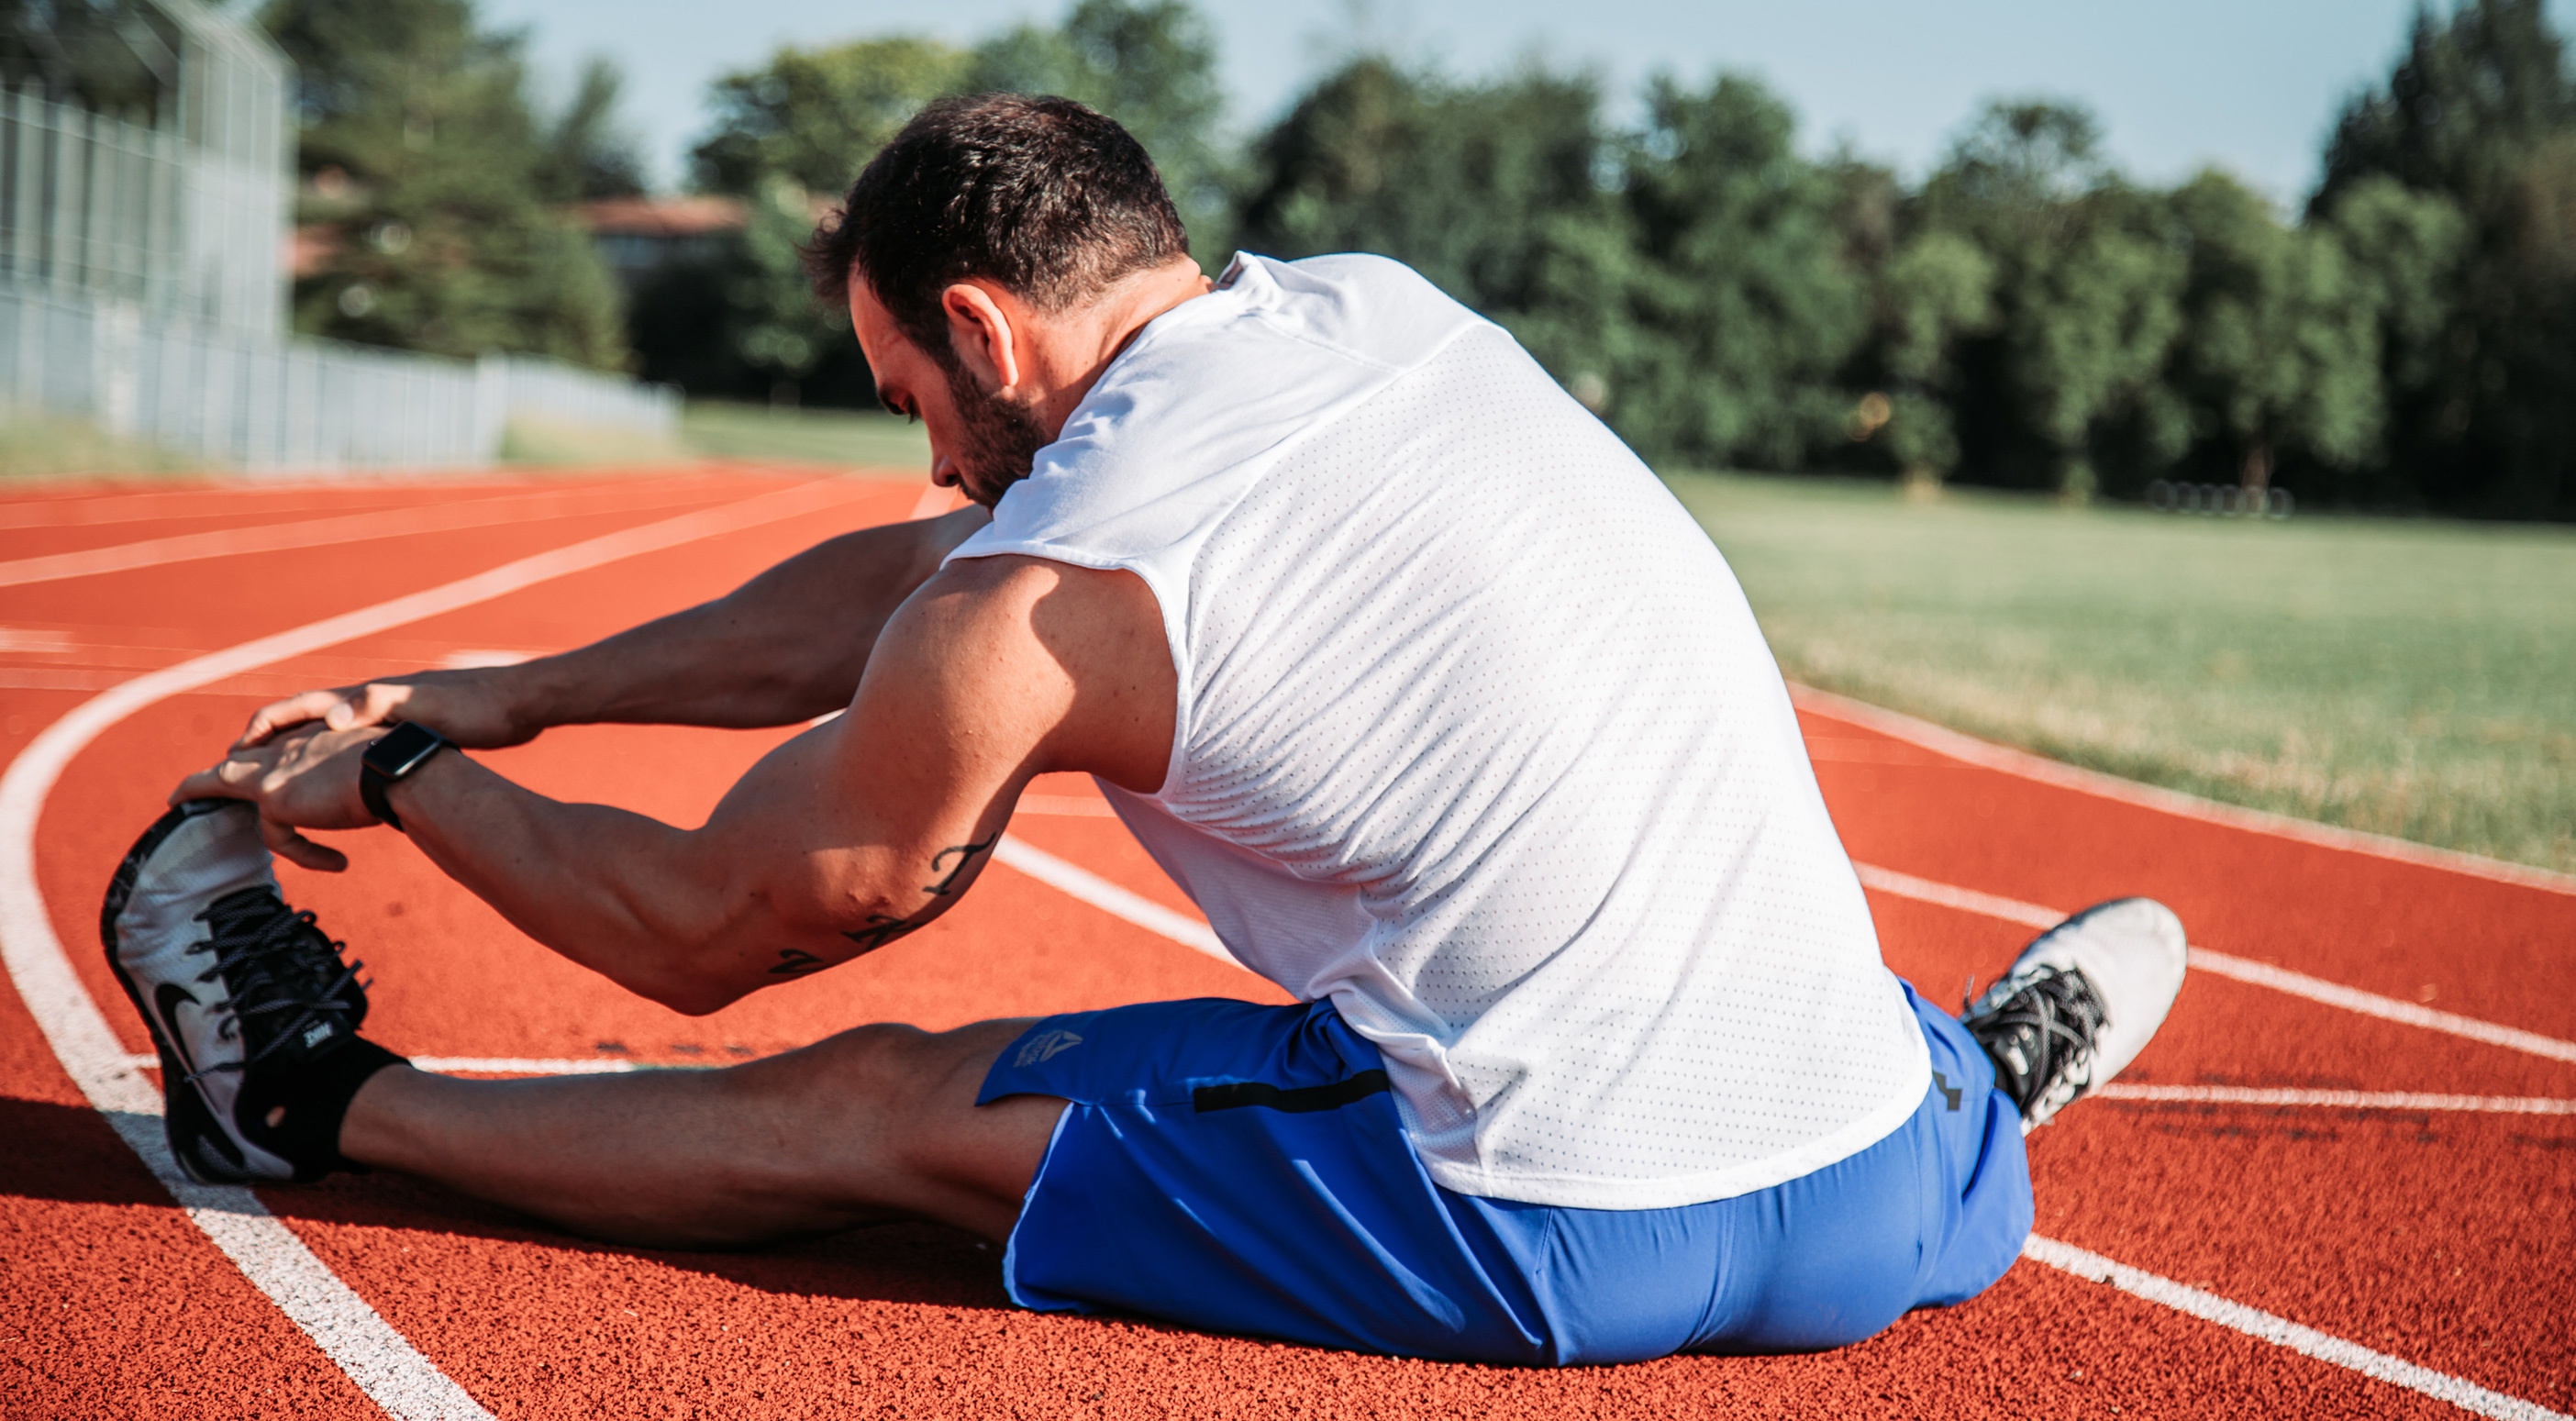 Young man stretching in the running field